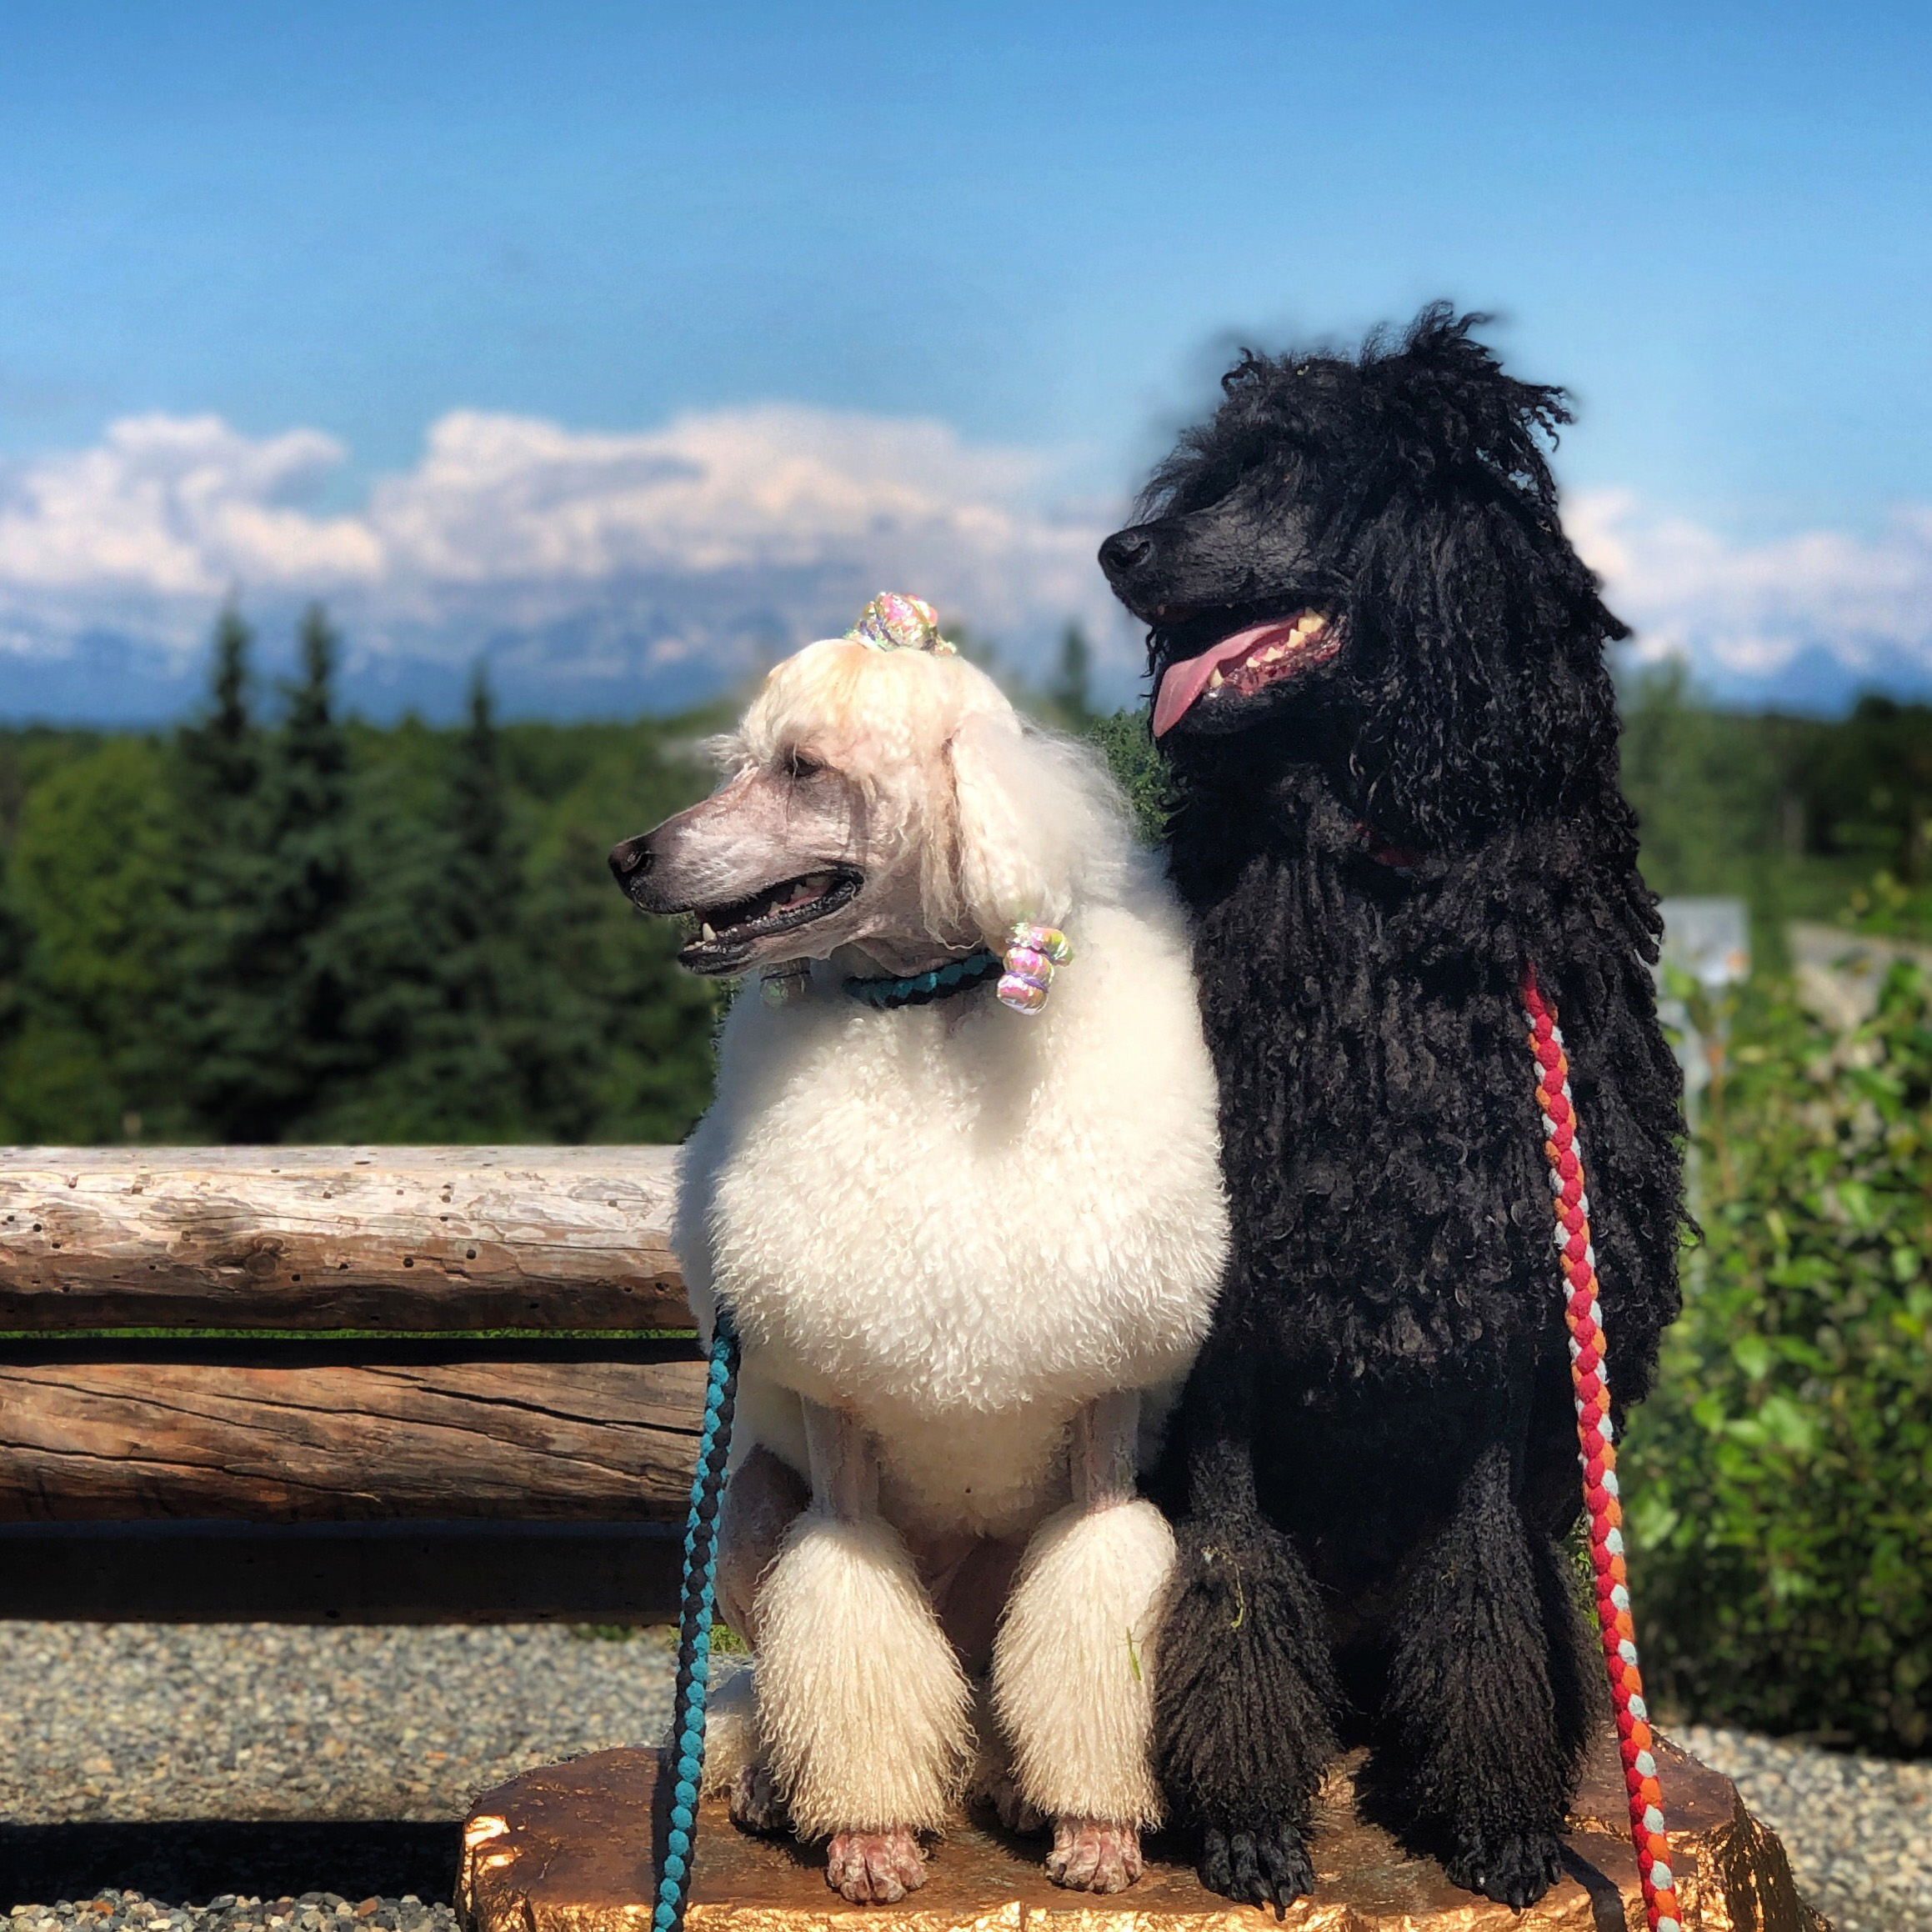 Galavanting Poodles spent nearly every day walking through their new home town of Talkeetna, Alaska.